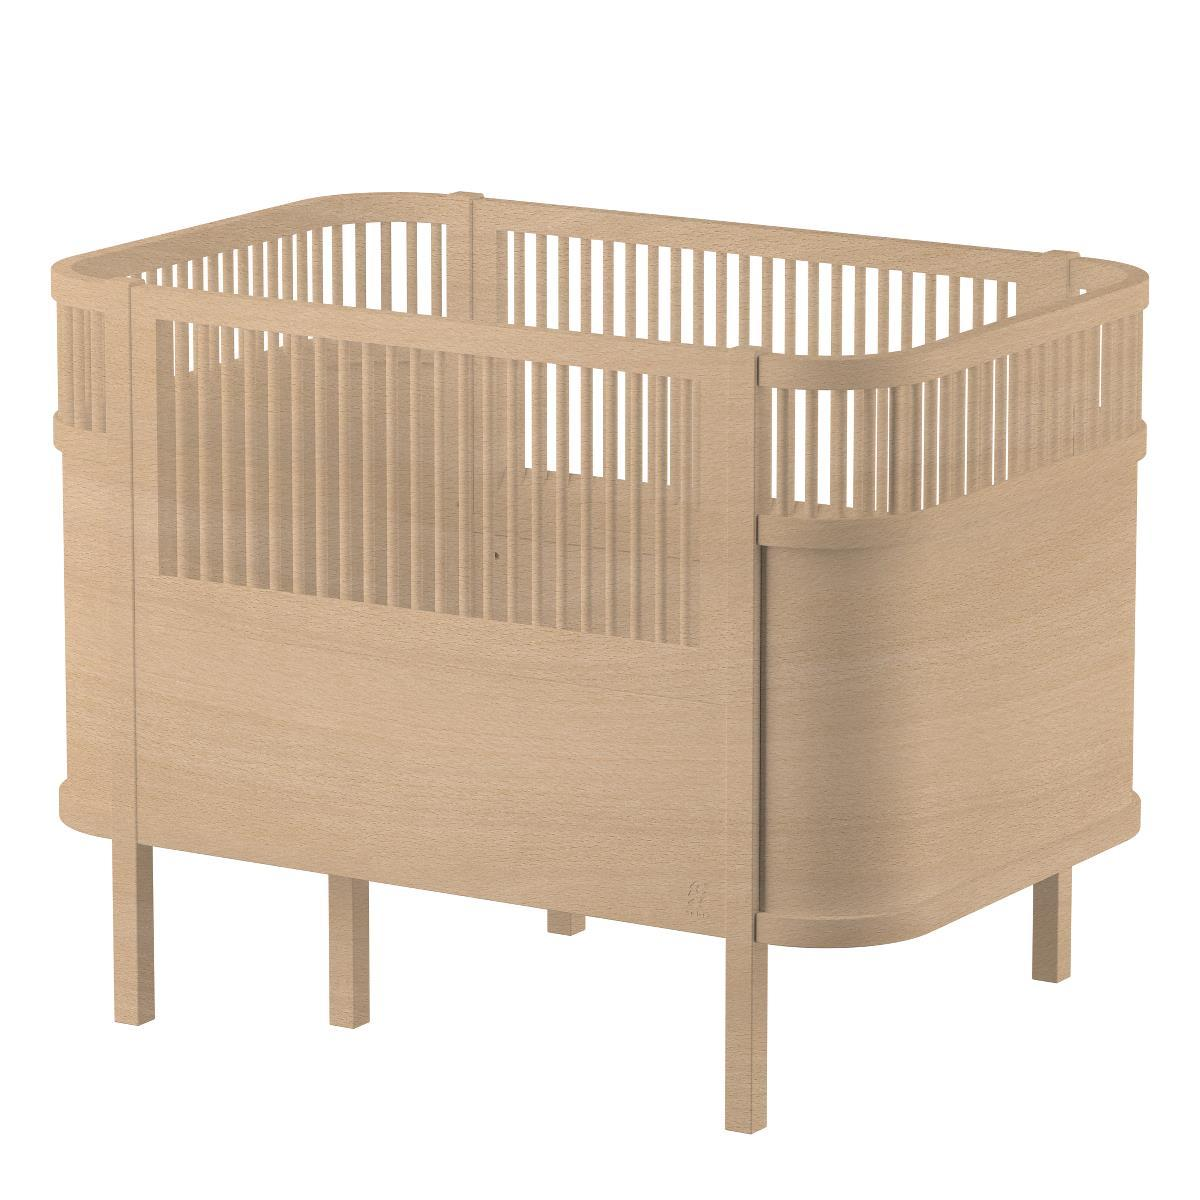 Sebra Baby & Junior Bed - Wooden Edition